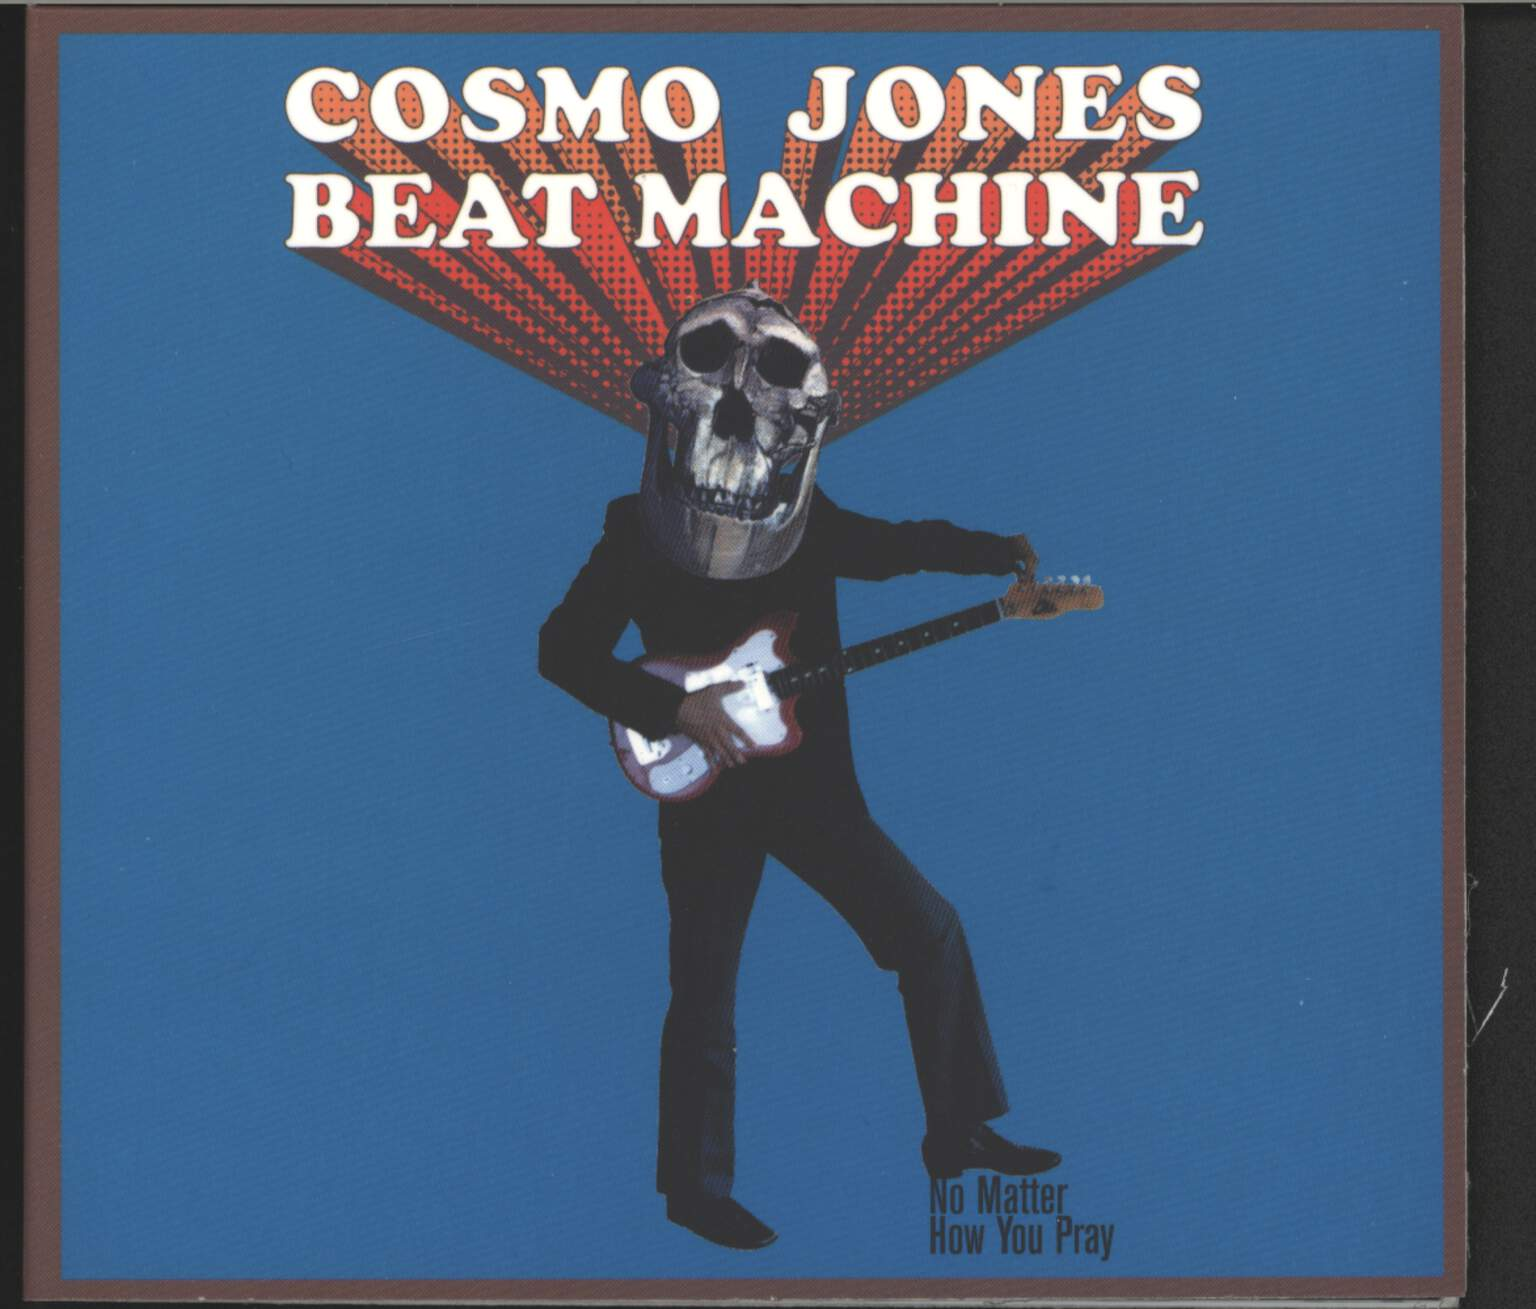 Cosmo Jones Beat Machine: No Matter How You Pray, CD